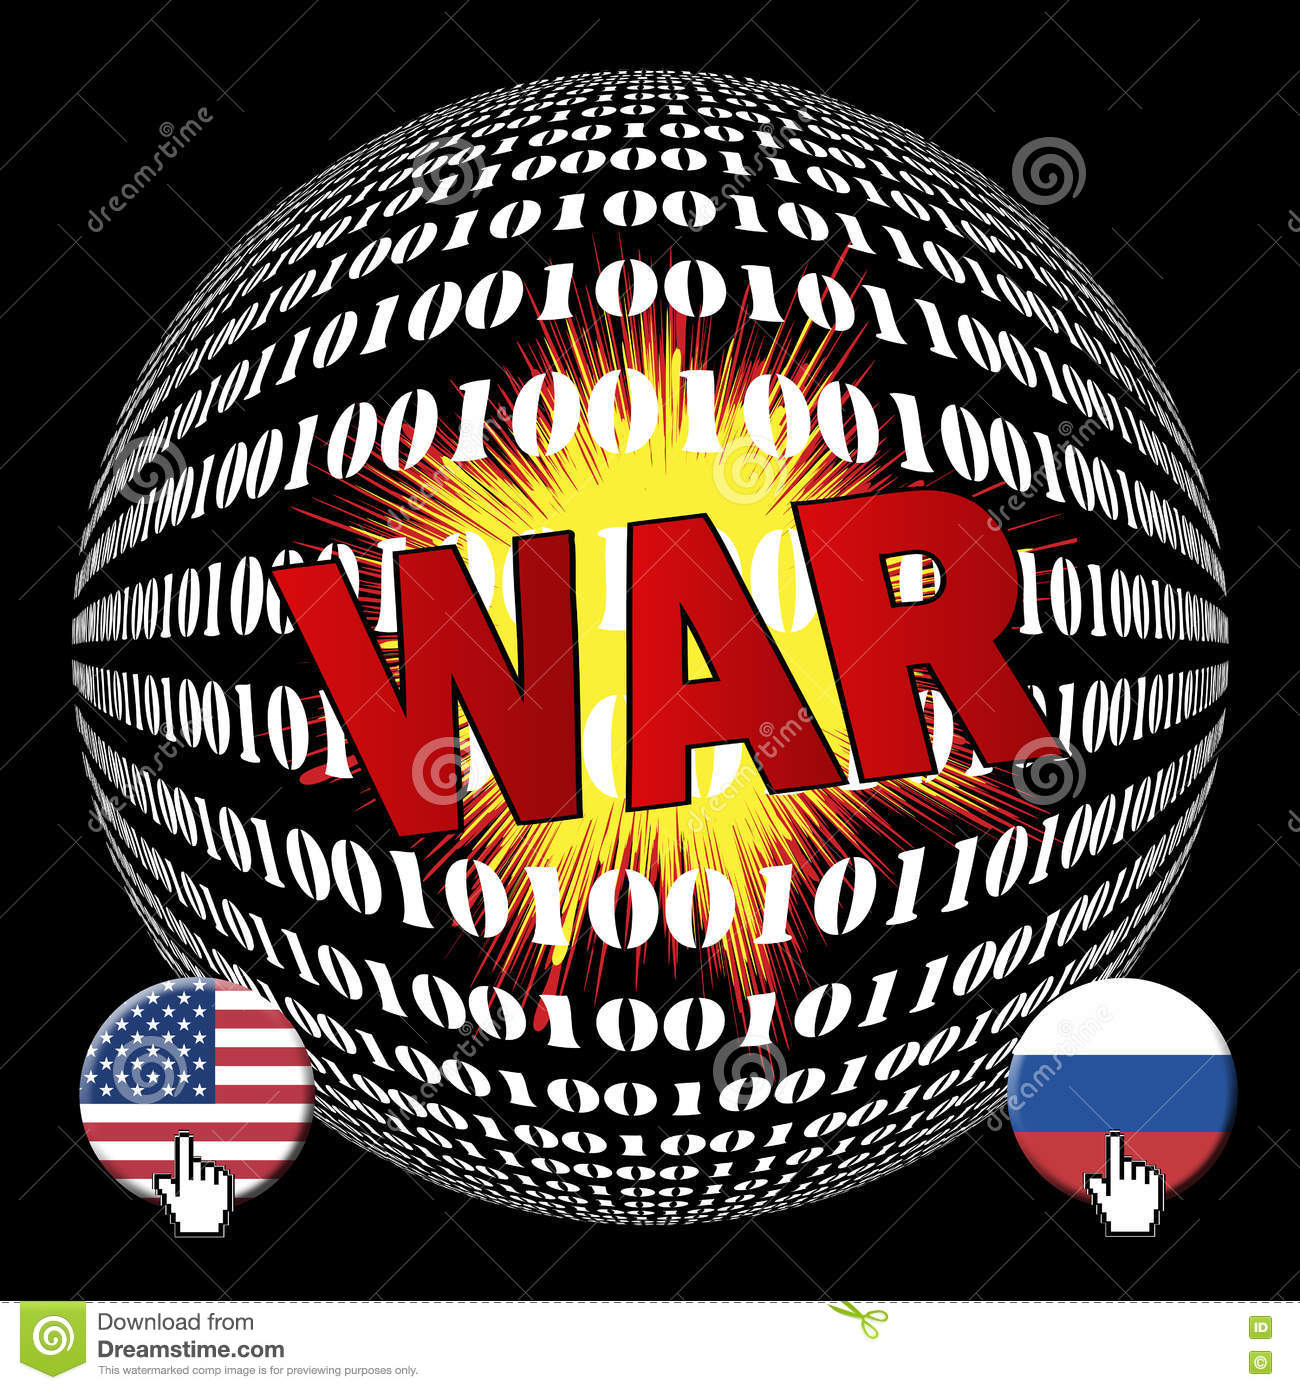 an analysis of the conflict between the us and russia 16102015 a three-sided disaster: the american, russian,  the american, russian, and iranian strategic  into a geopolitical confrontation between russia and.